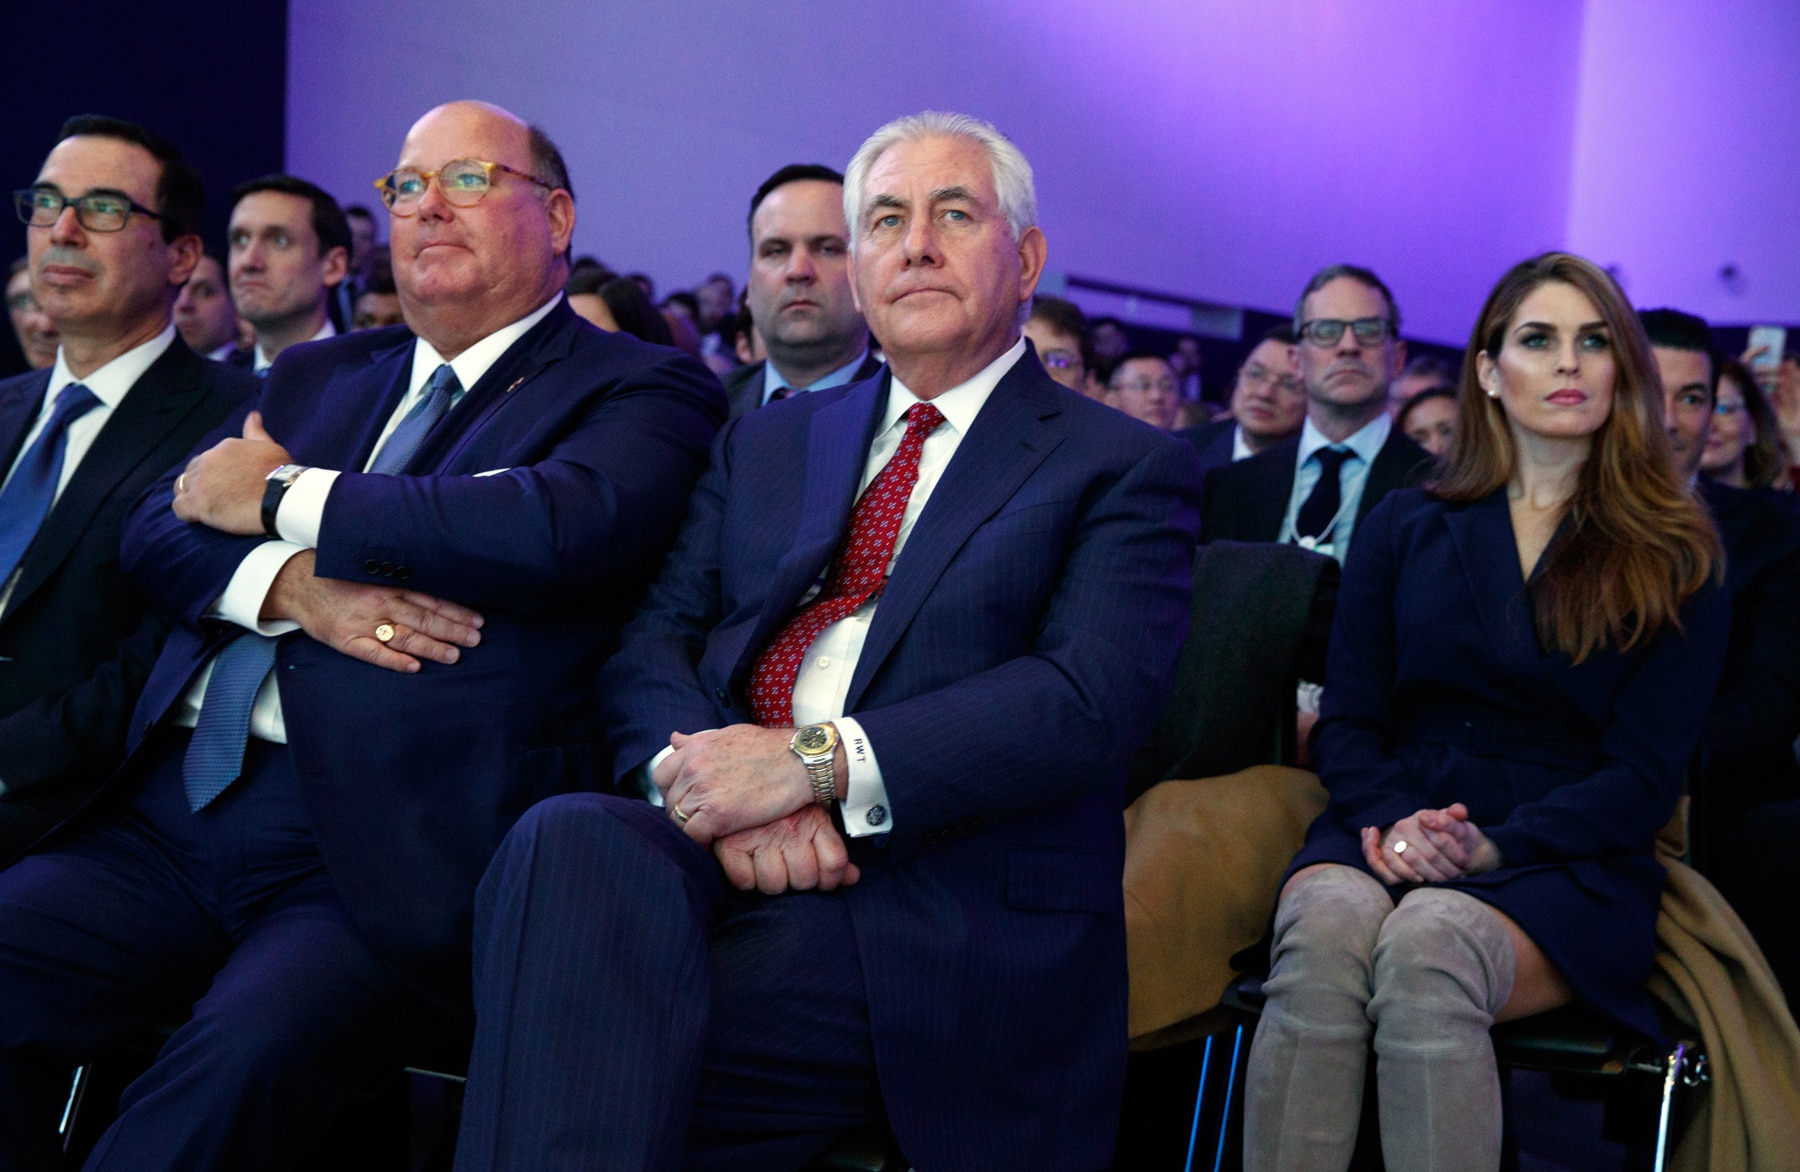 Rex Tillerson (center) sitting in an audience (© AP Images)